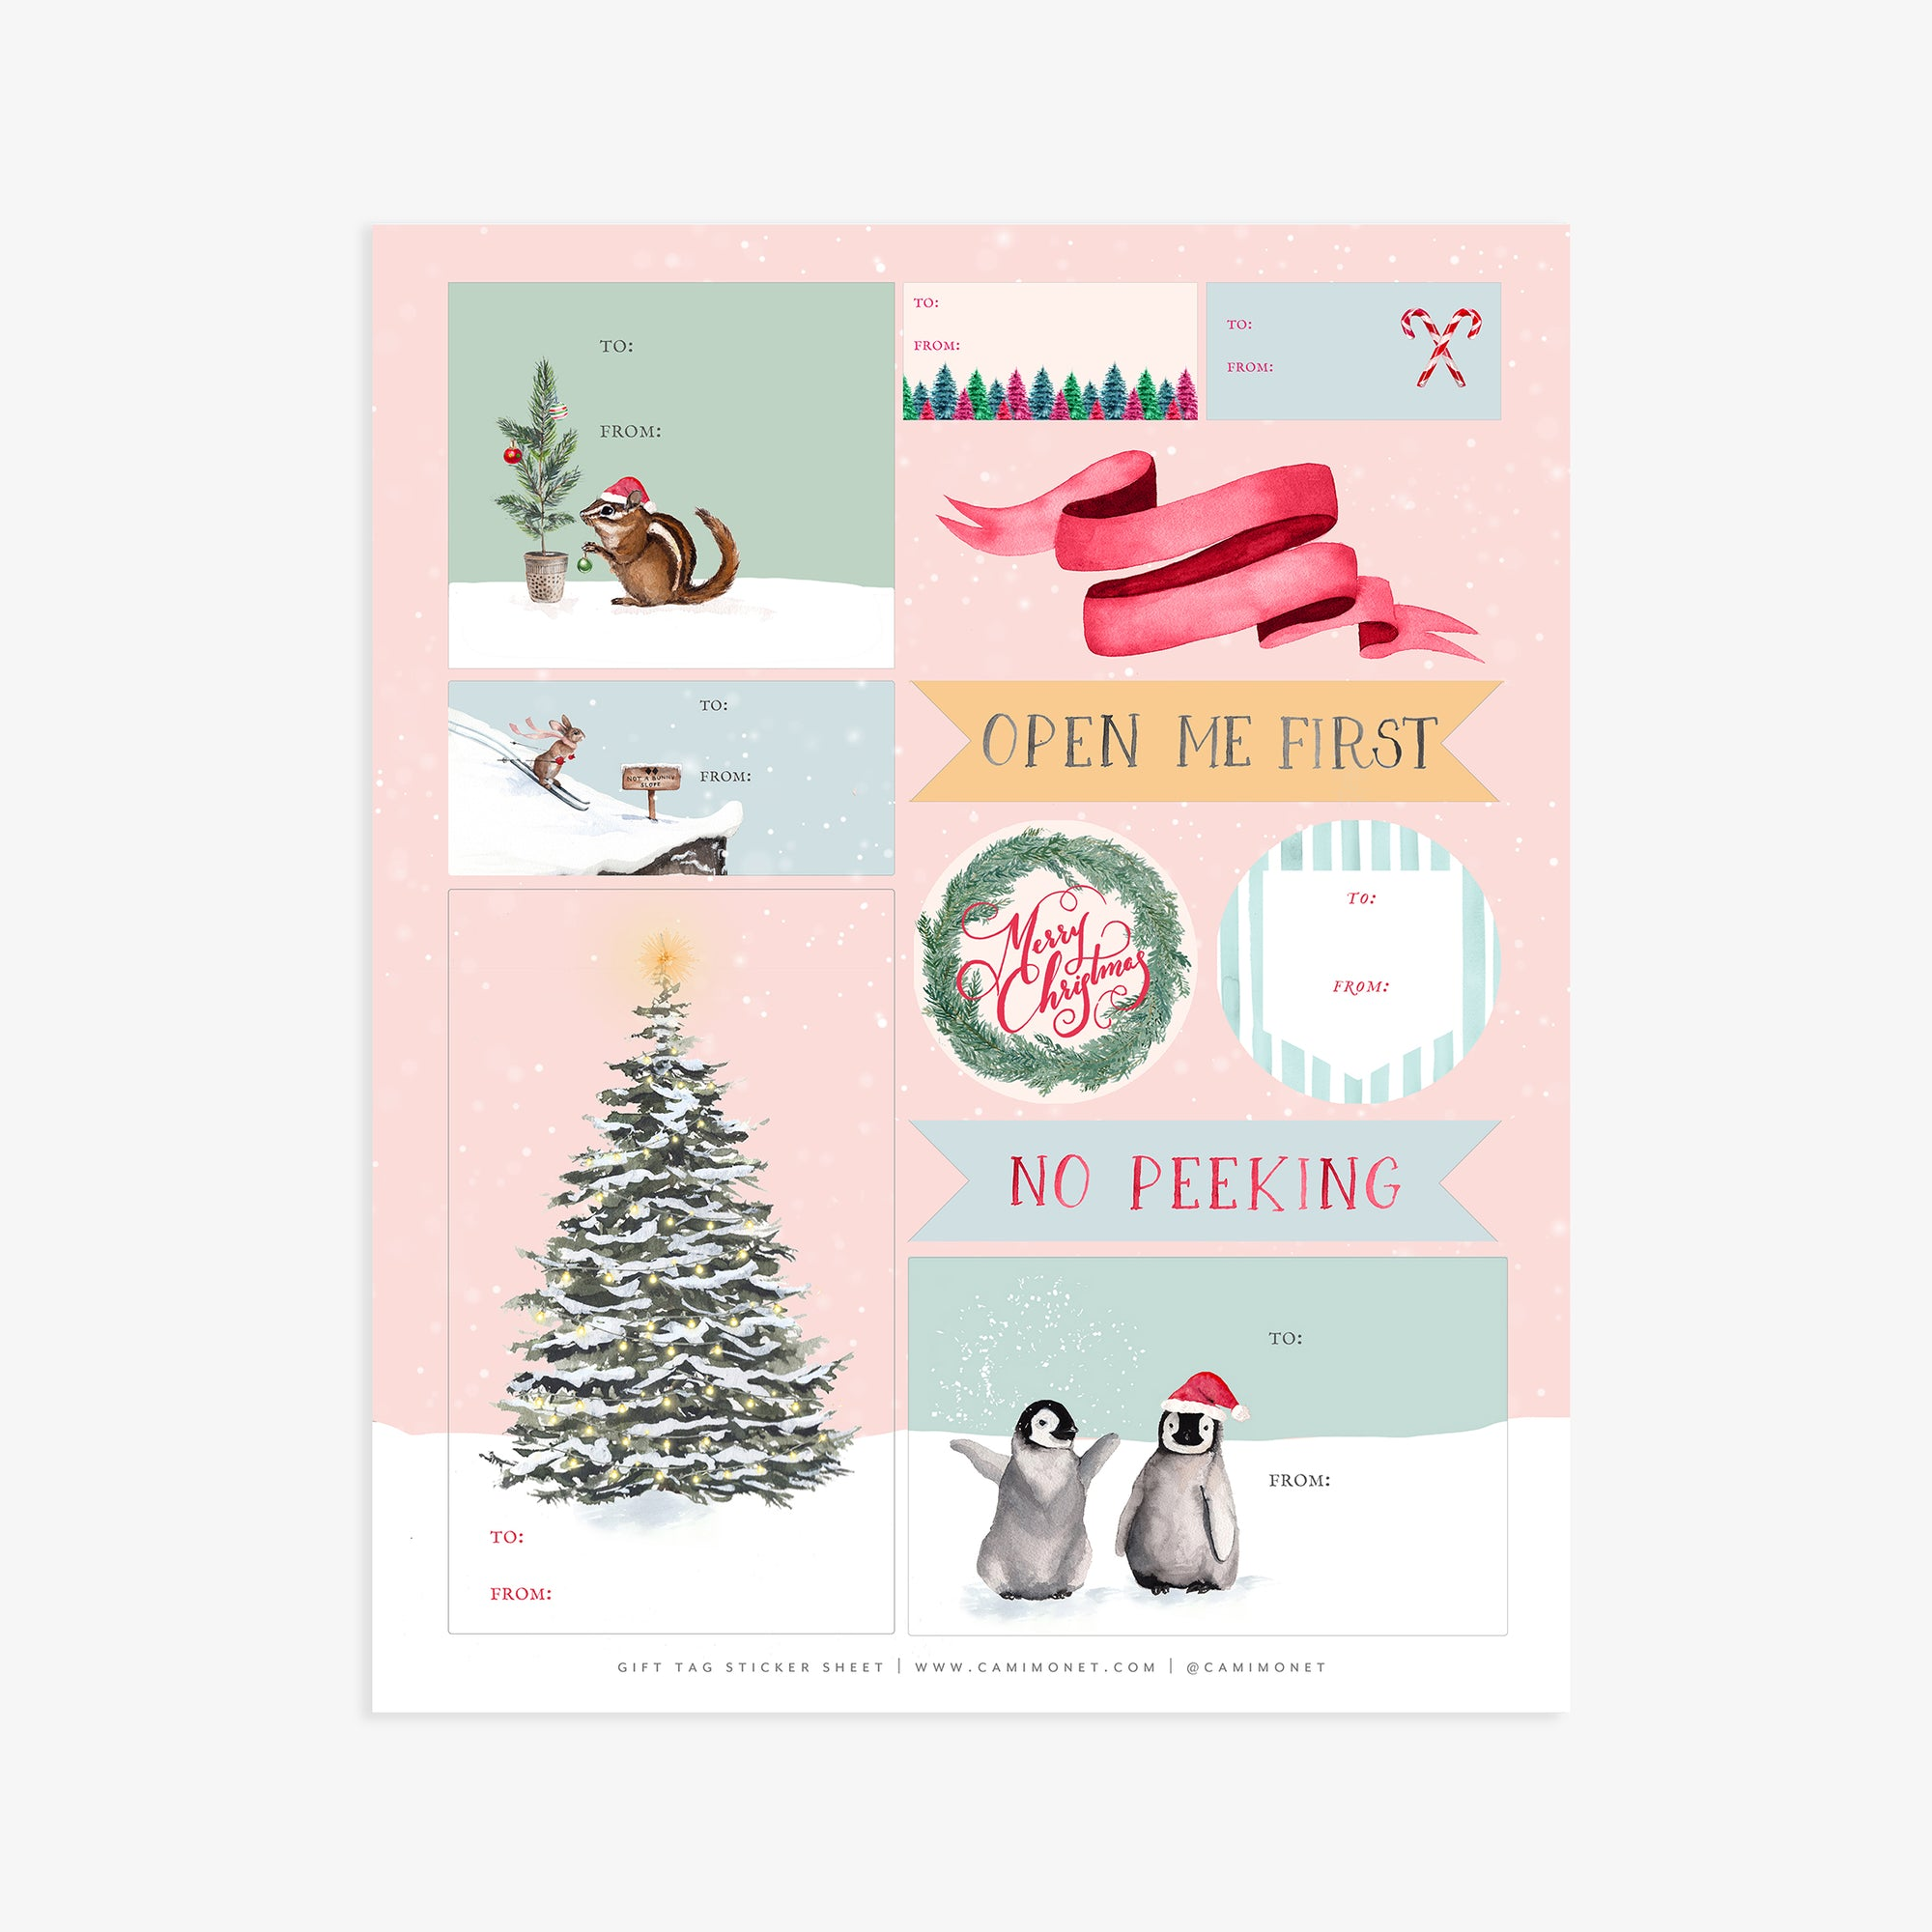 Holiday Gift Tags Sticker Sheet